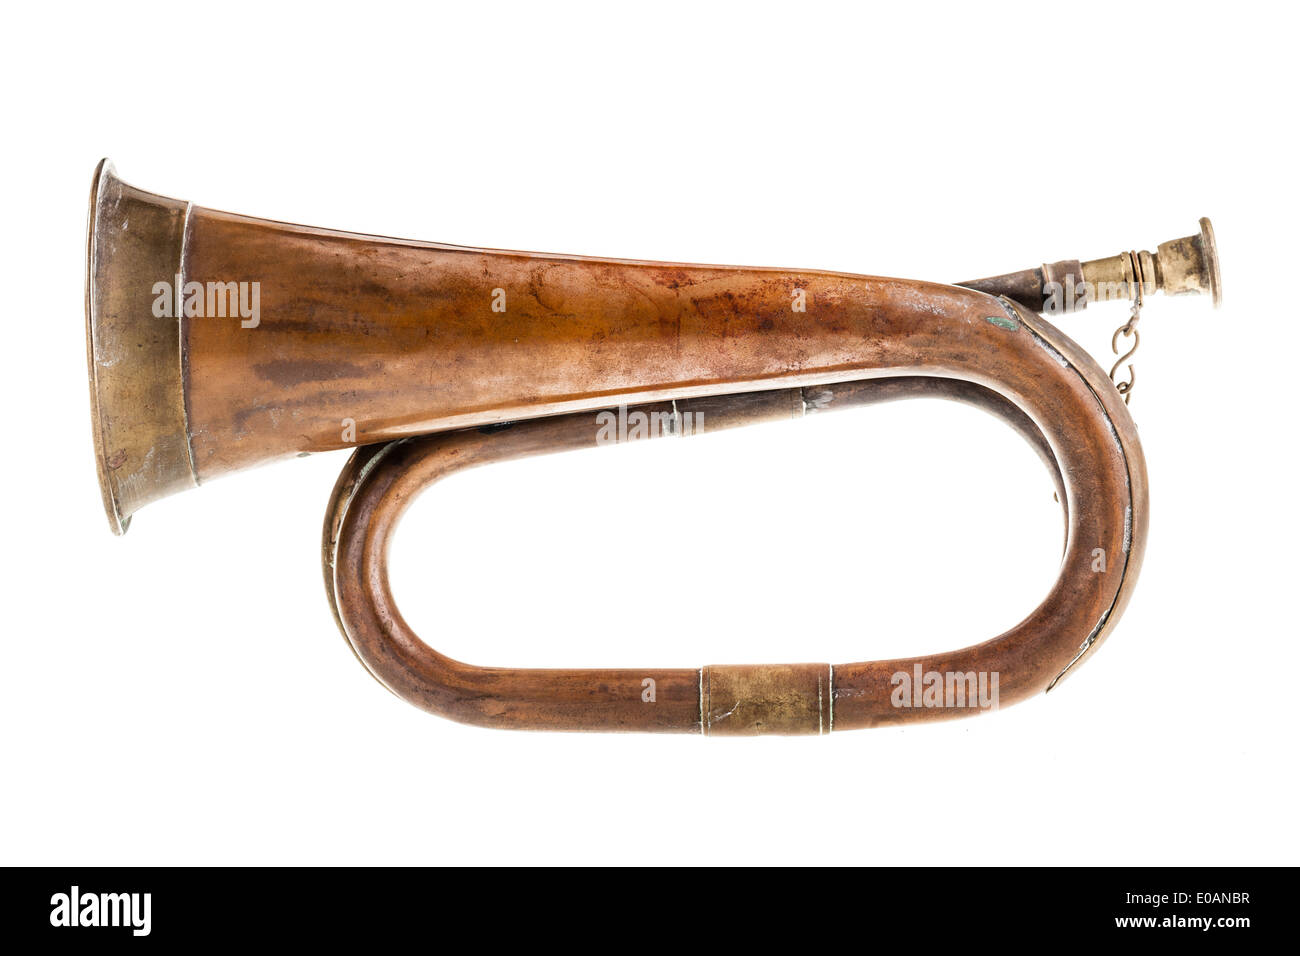 an old and rusty bugle isolated over a white background - Stock Image